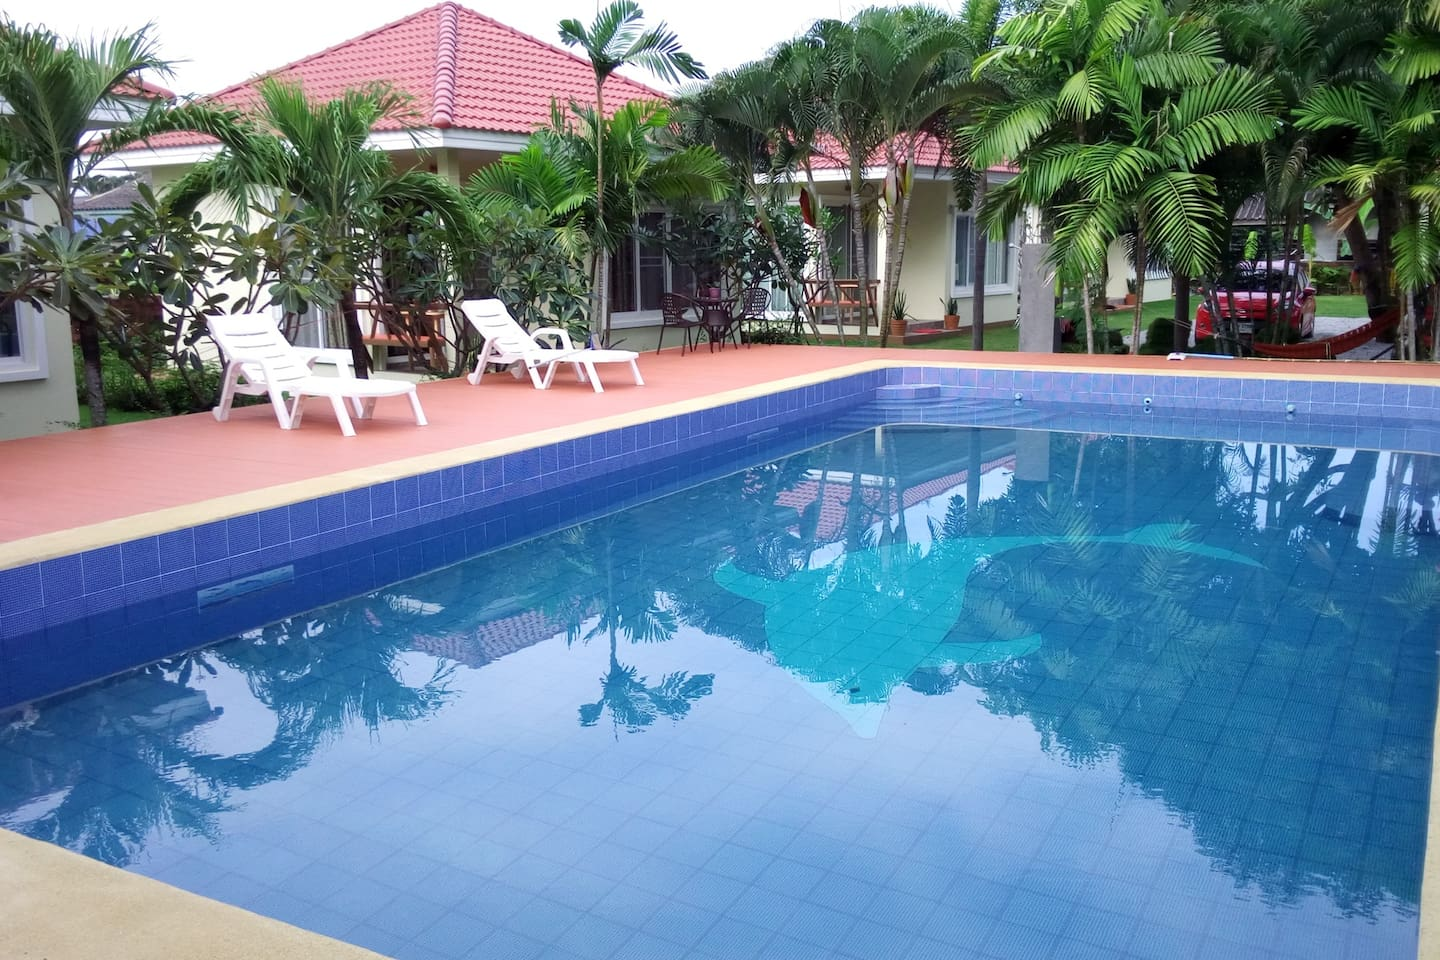 Swimming Pool 10 x 5m x 1.5 deep - Private guest use only